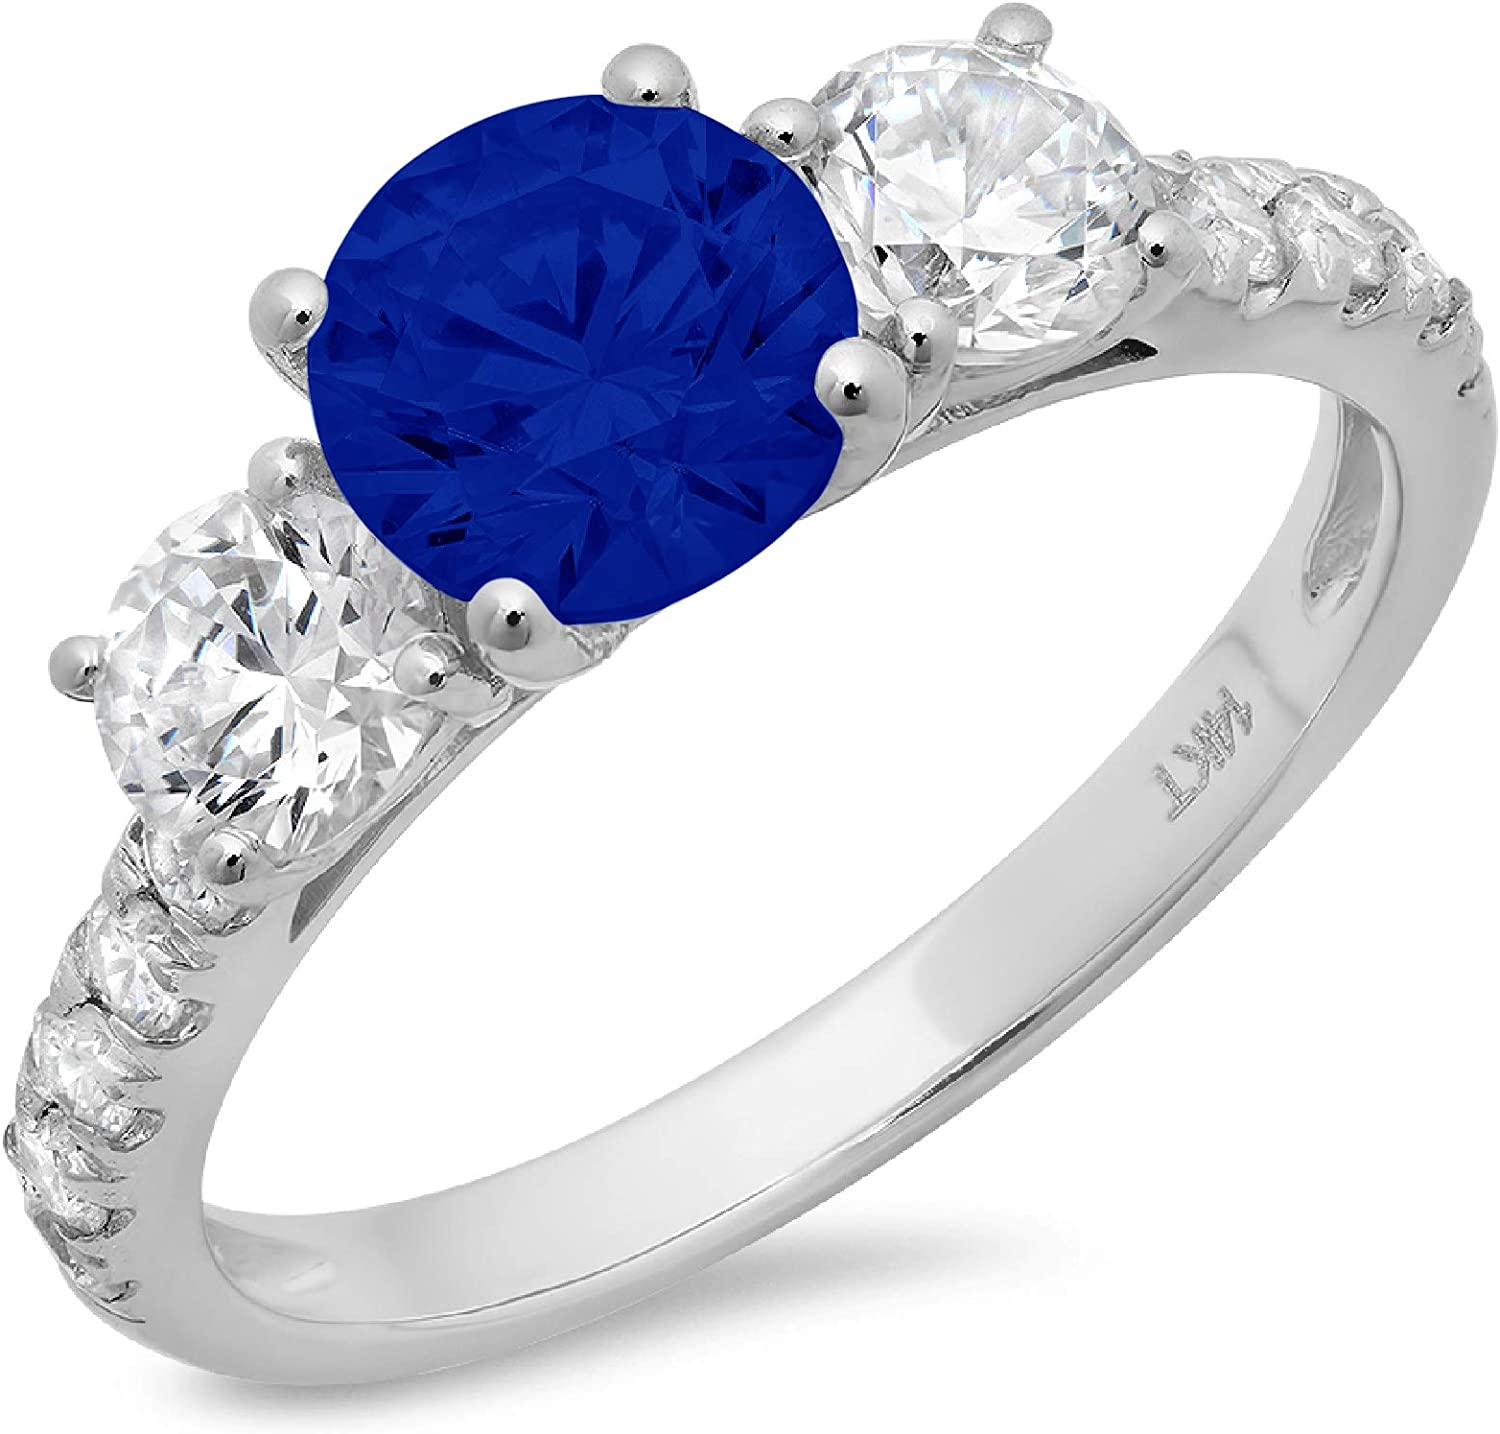 2 ct Brilliant Round Cut Solitaire 3 stone With Accent Flawless Genuine Simulated Blue Sapphire Ideal Engagement Promise Statement Anniversary Bridal Wedding Designer Ring 14k White Gold